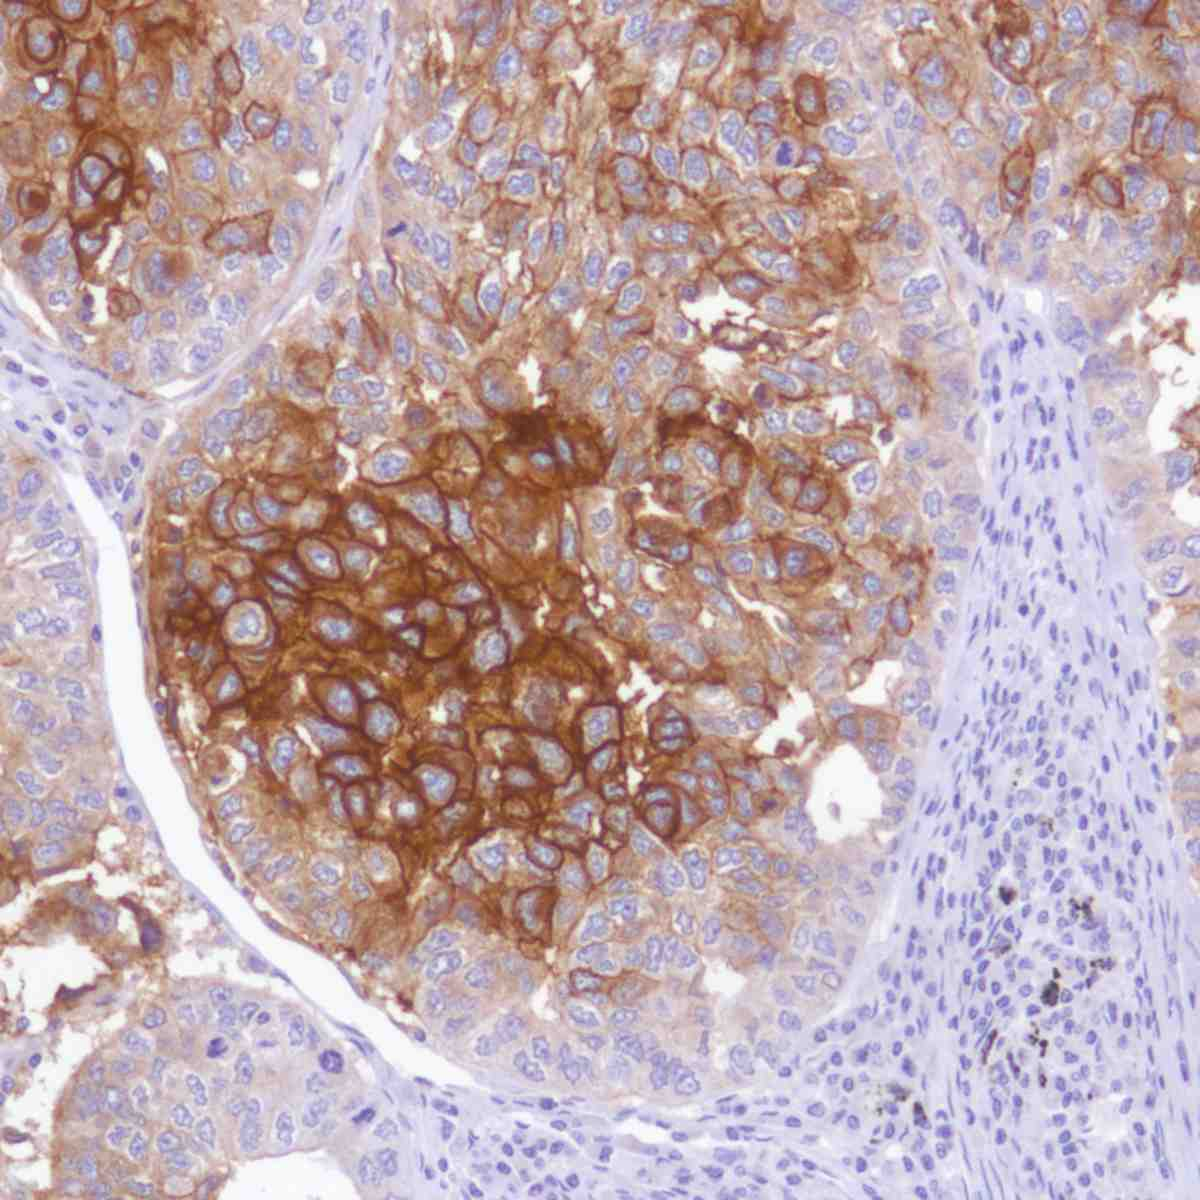 Human Lung squamous cell carcinoma stained with anti-TROP-2 antibody